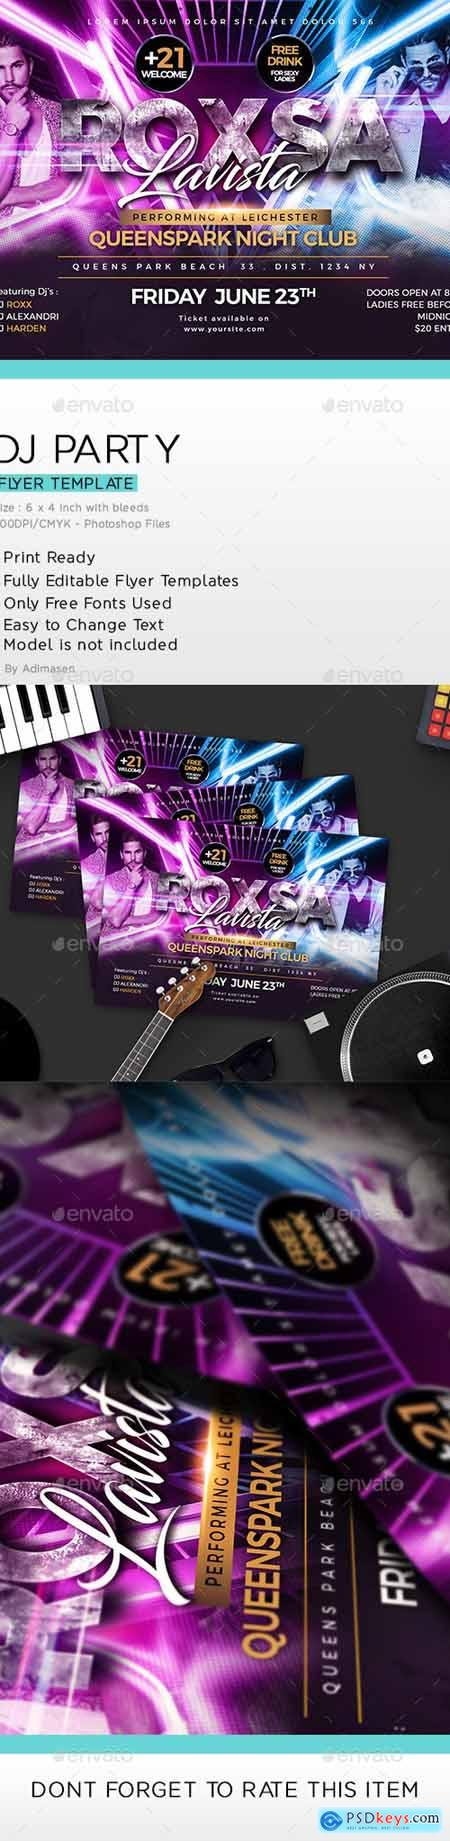 DJ Party Flyer 24279016